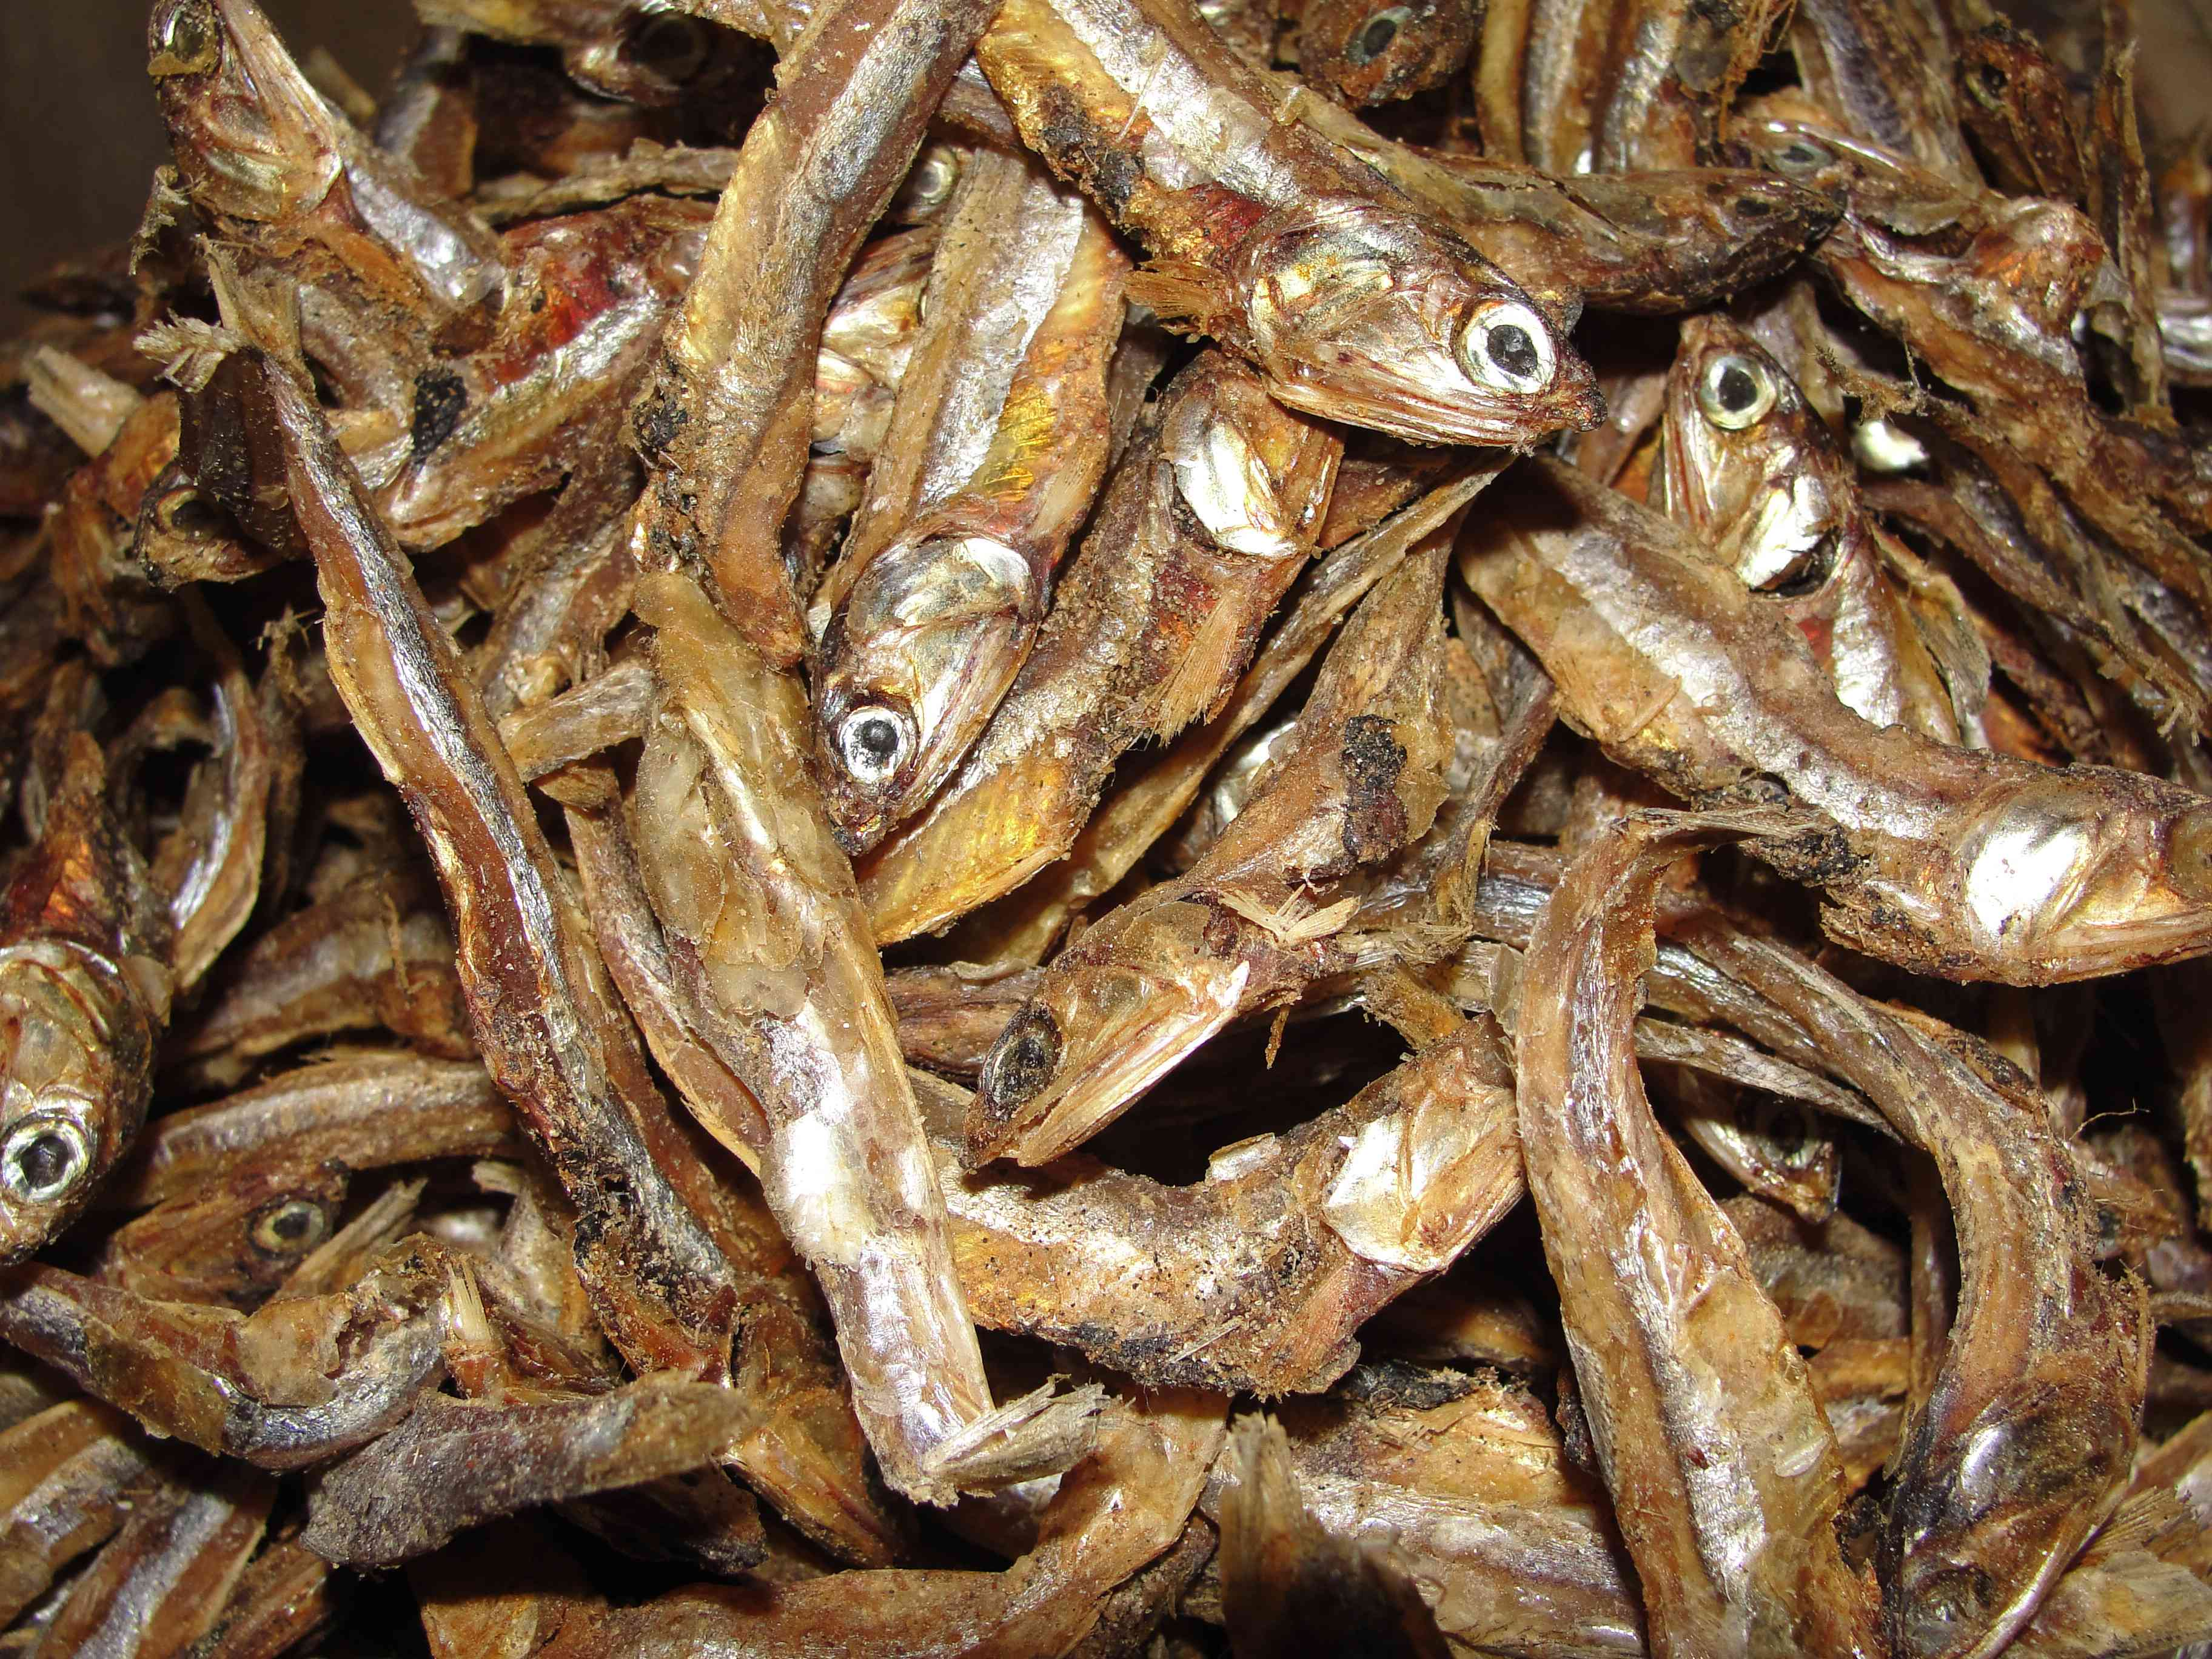 Dried fish: sparking a journey of introspection. Photo credit: Wikimedia Commons.